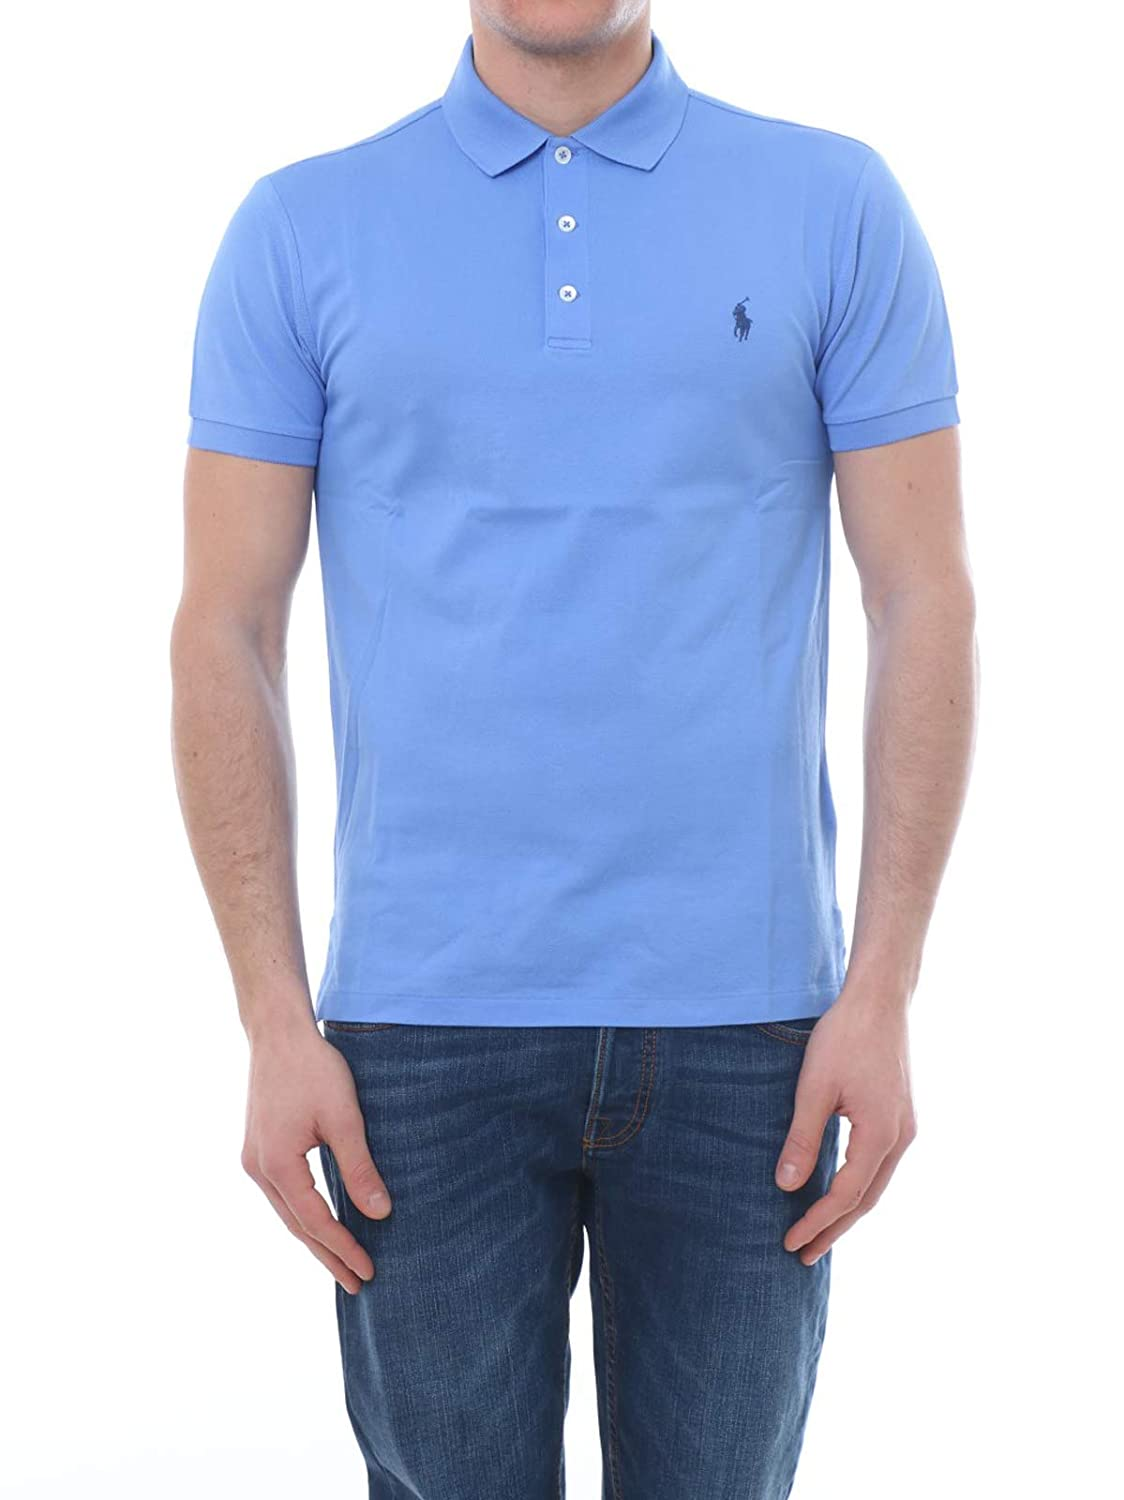 Bleu M Ralph Lauren manche courte Polo Shirt in Cotton, Homme.